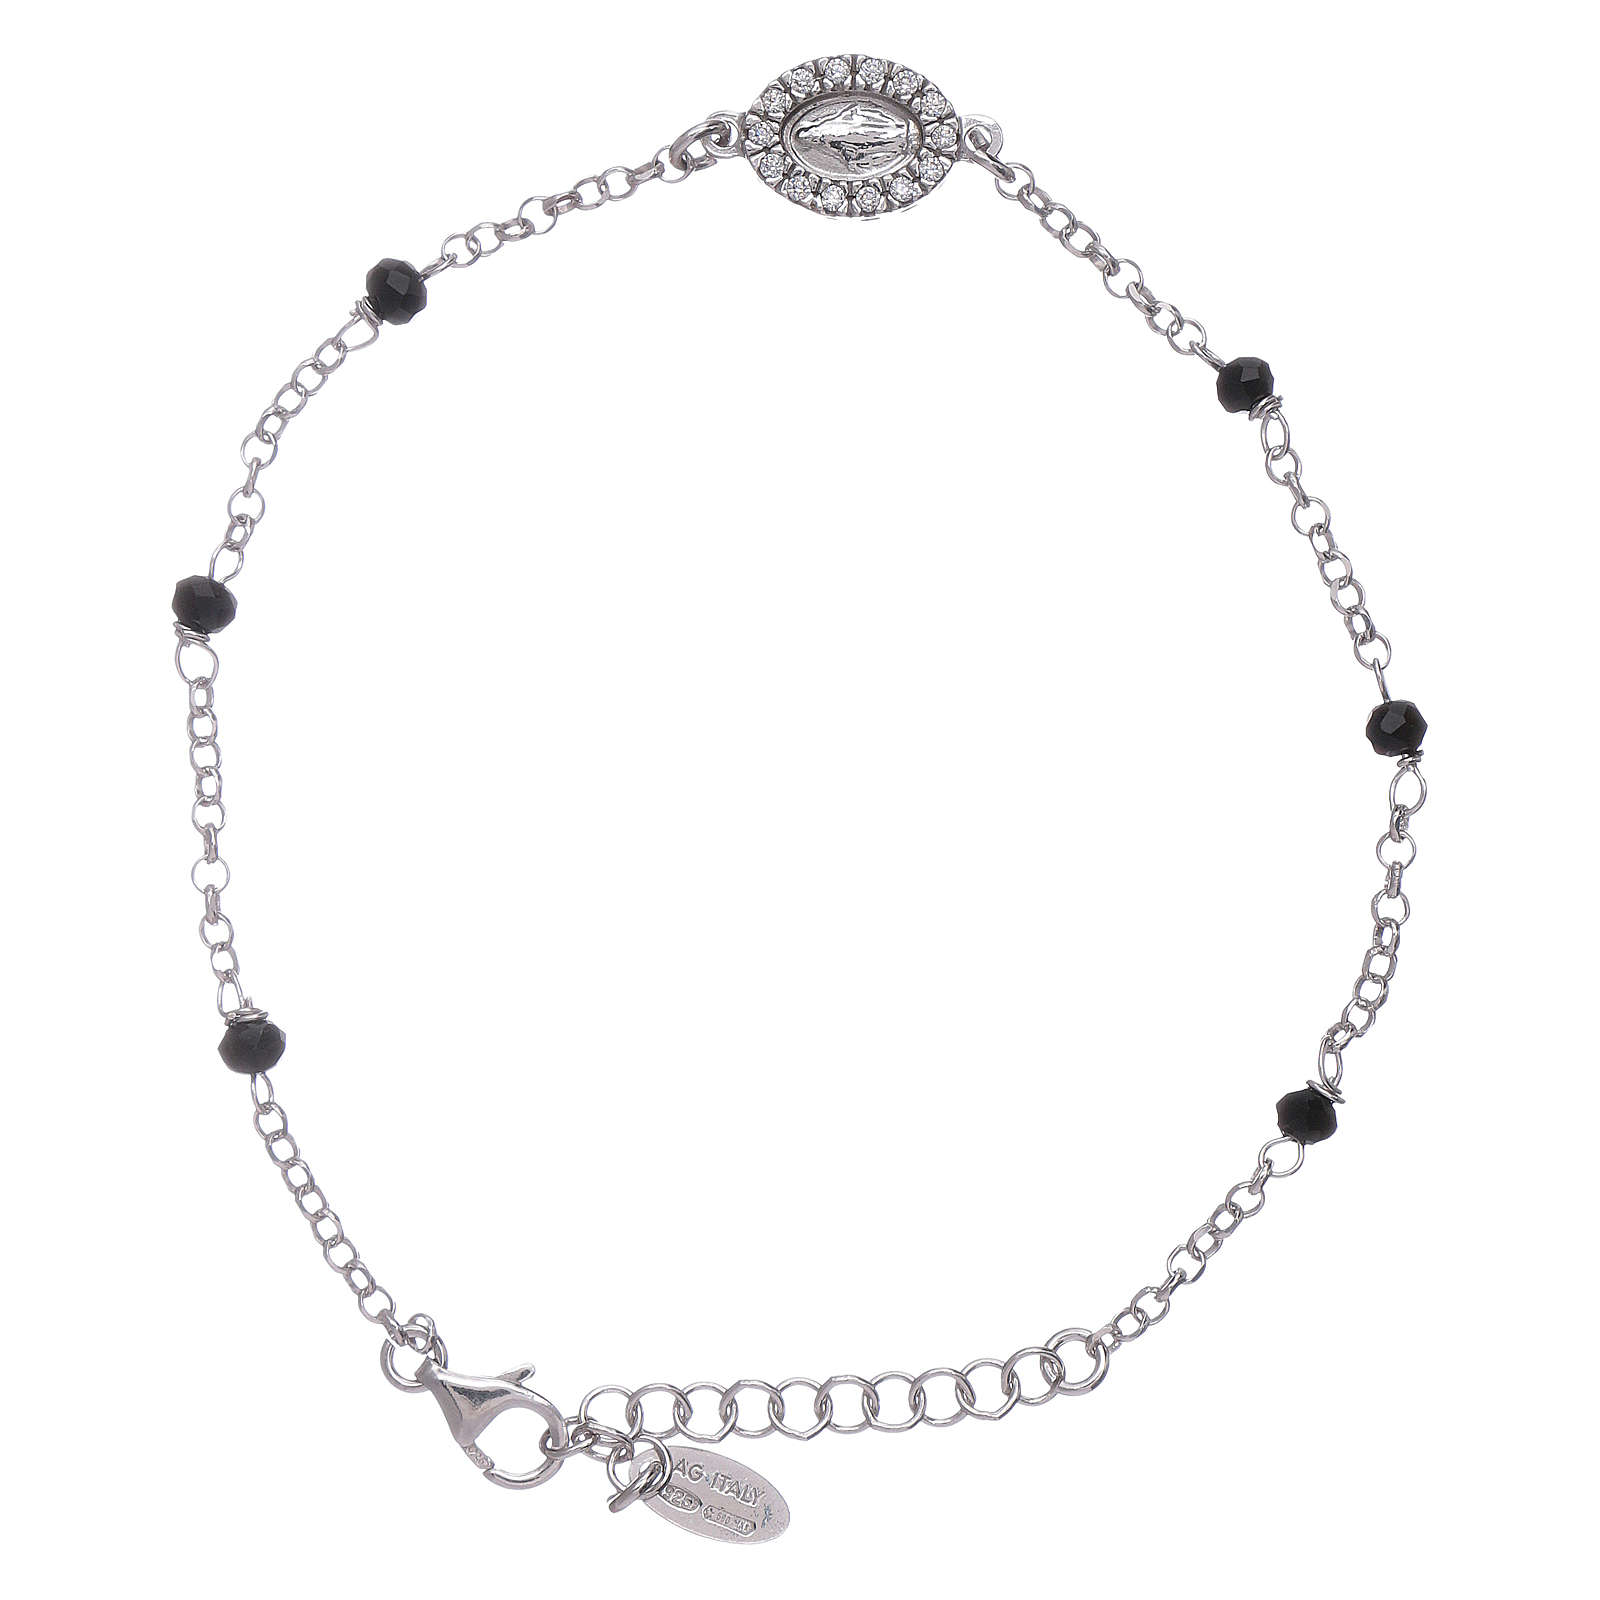 AMEN 925 sterling silver bracelet with black crystals and zirconate Miraculous Virgin Mary insert 4